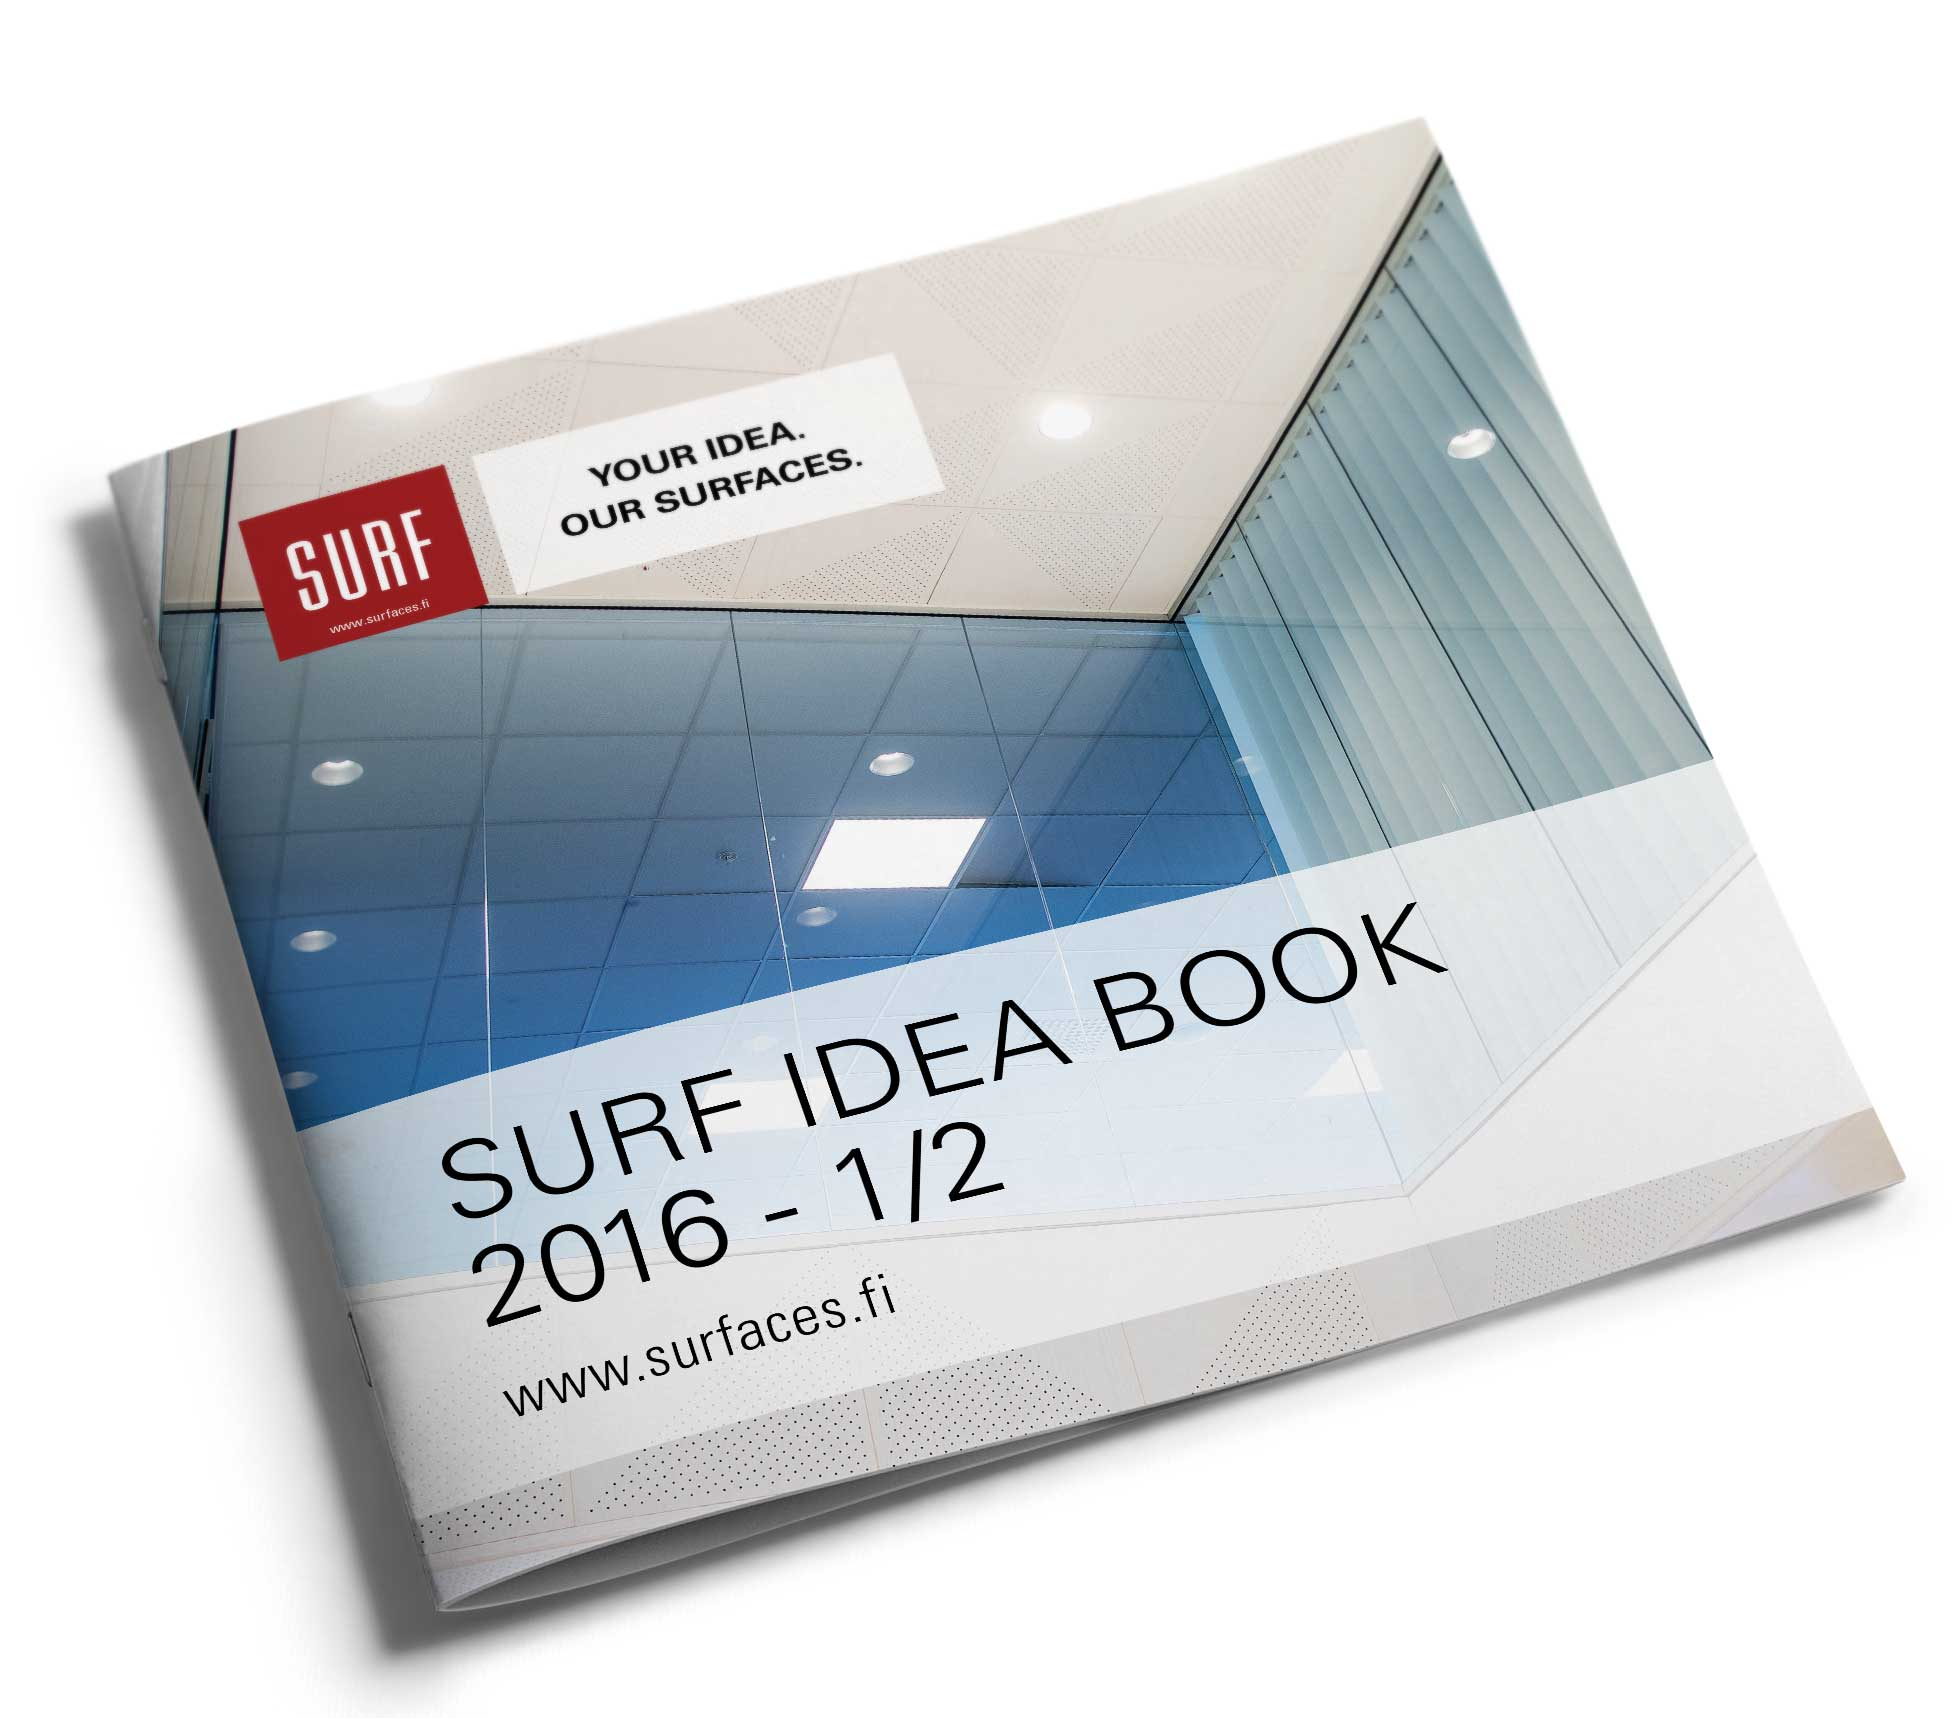 SURF Idea Book 2016 - 1/2